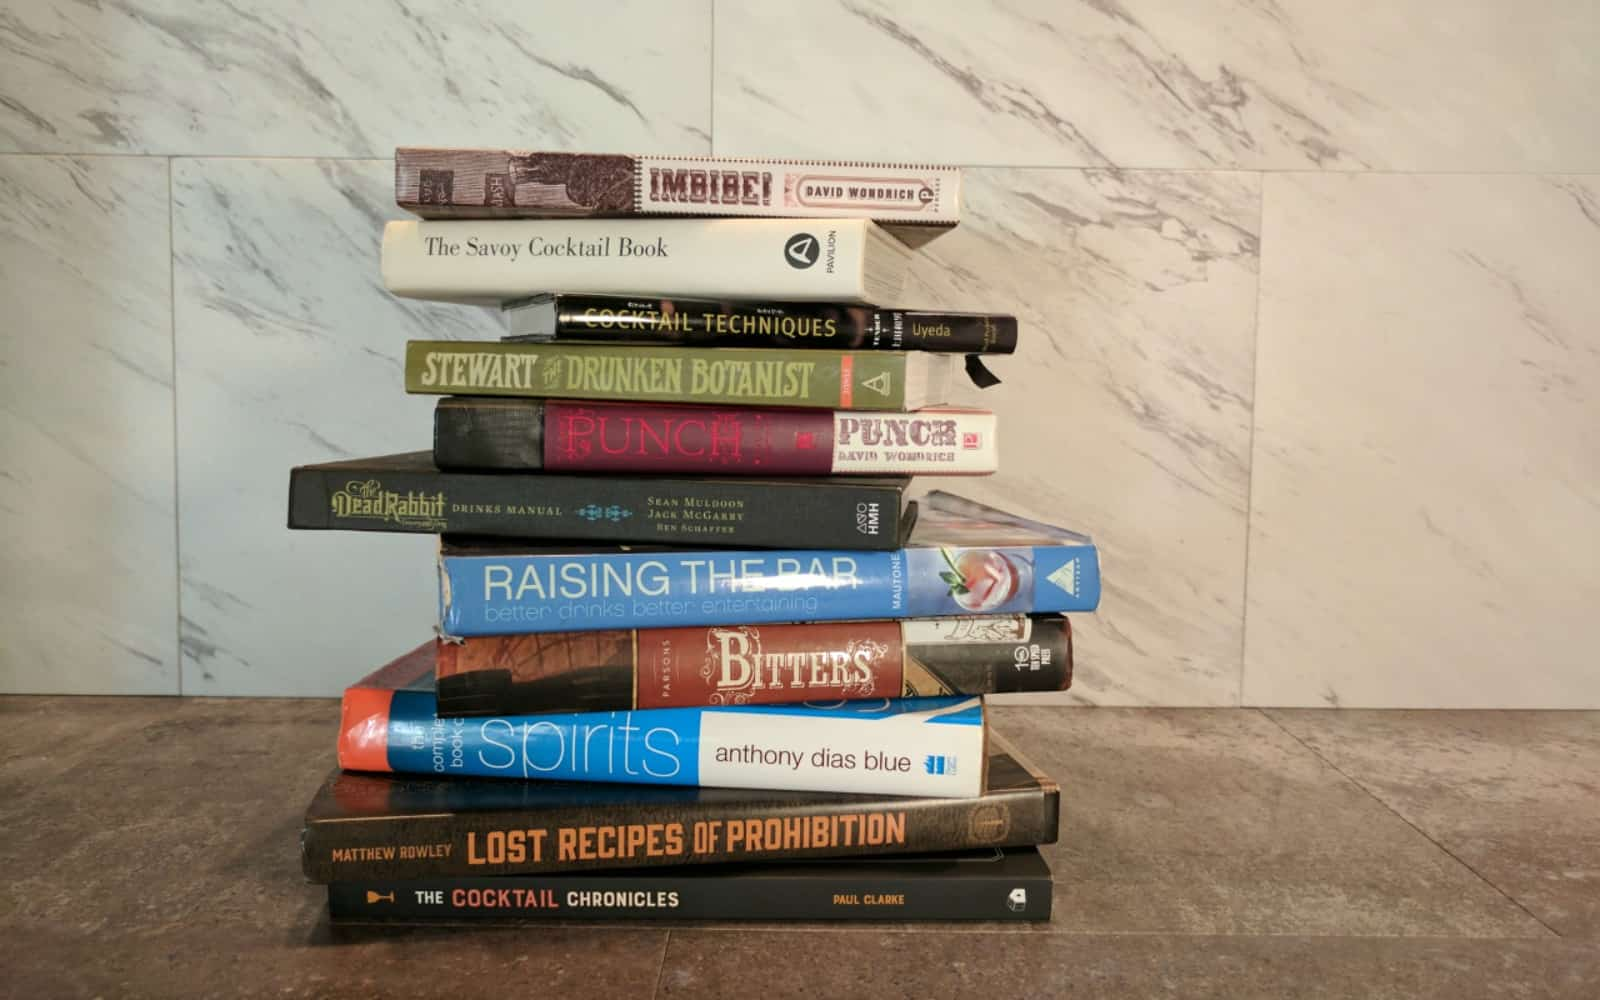 Bar Books: What order should I read them in?